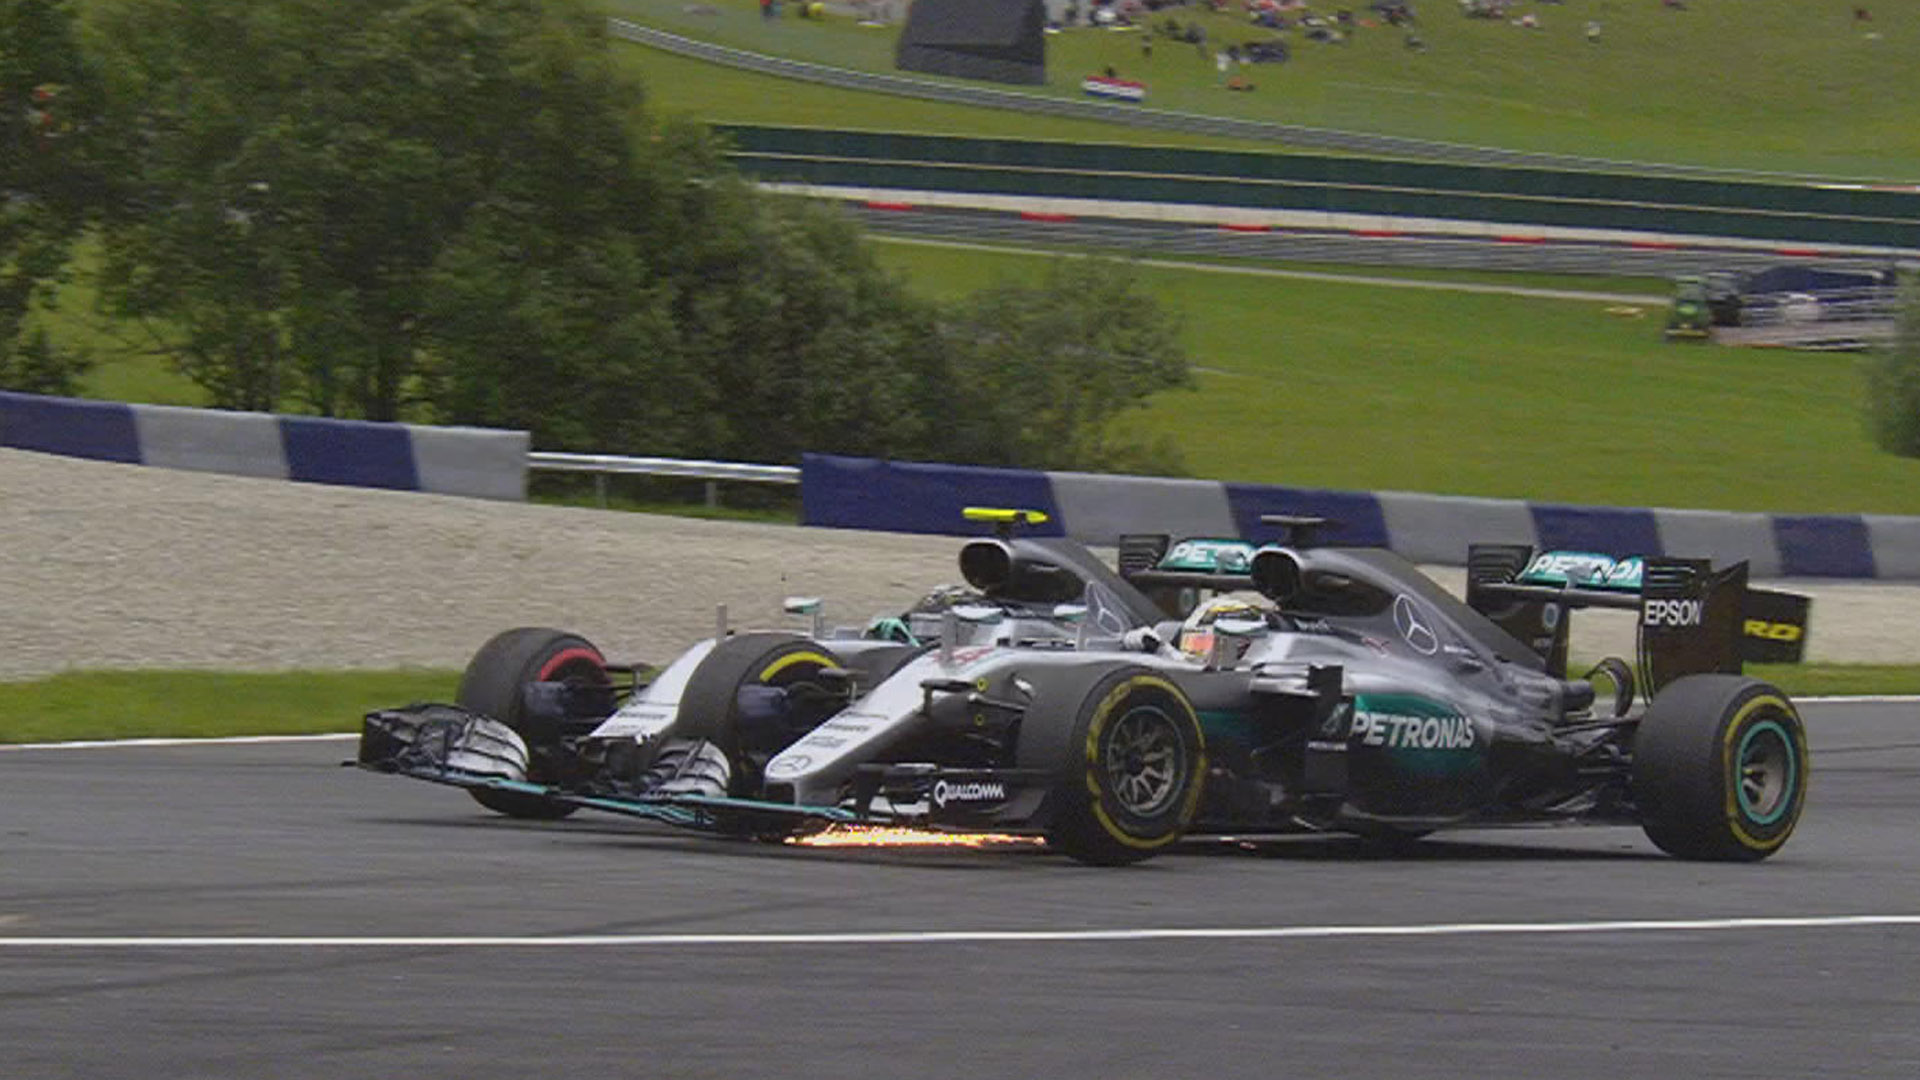 The point of contact where Rosberg drove into Hamilton Photo: skysports